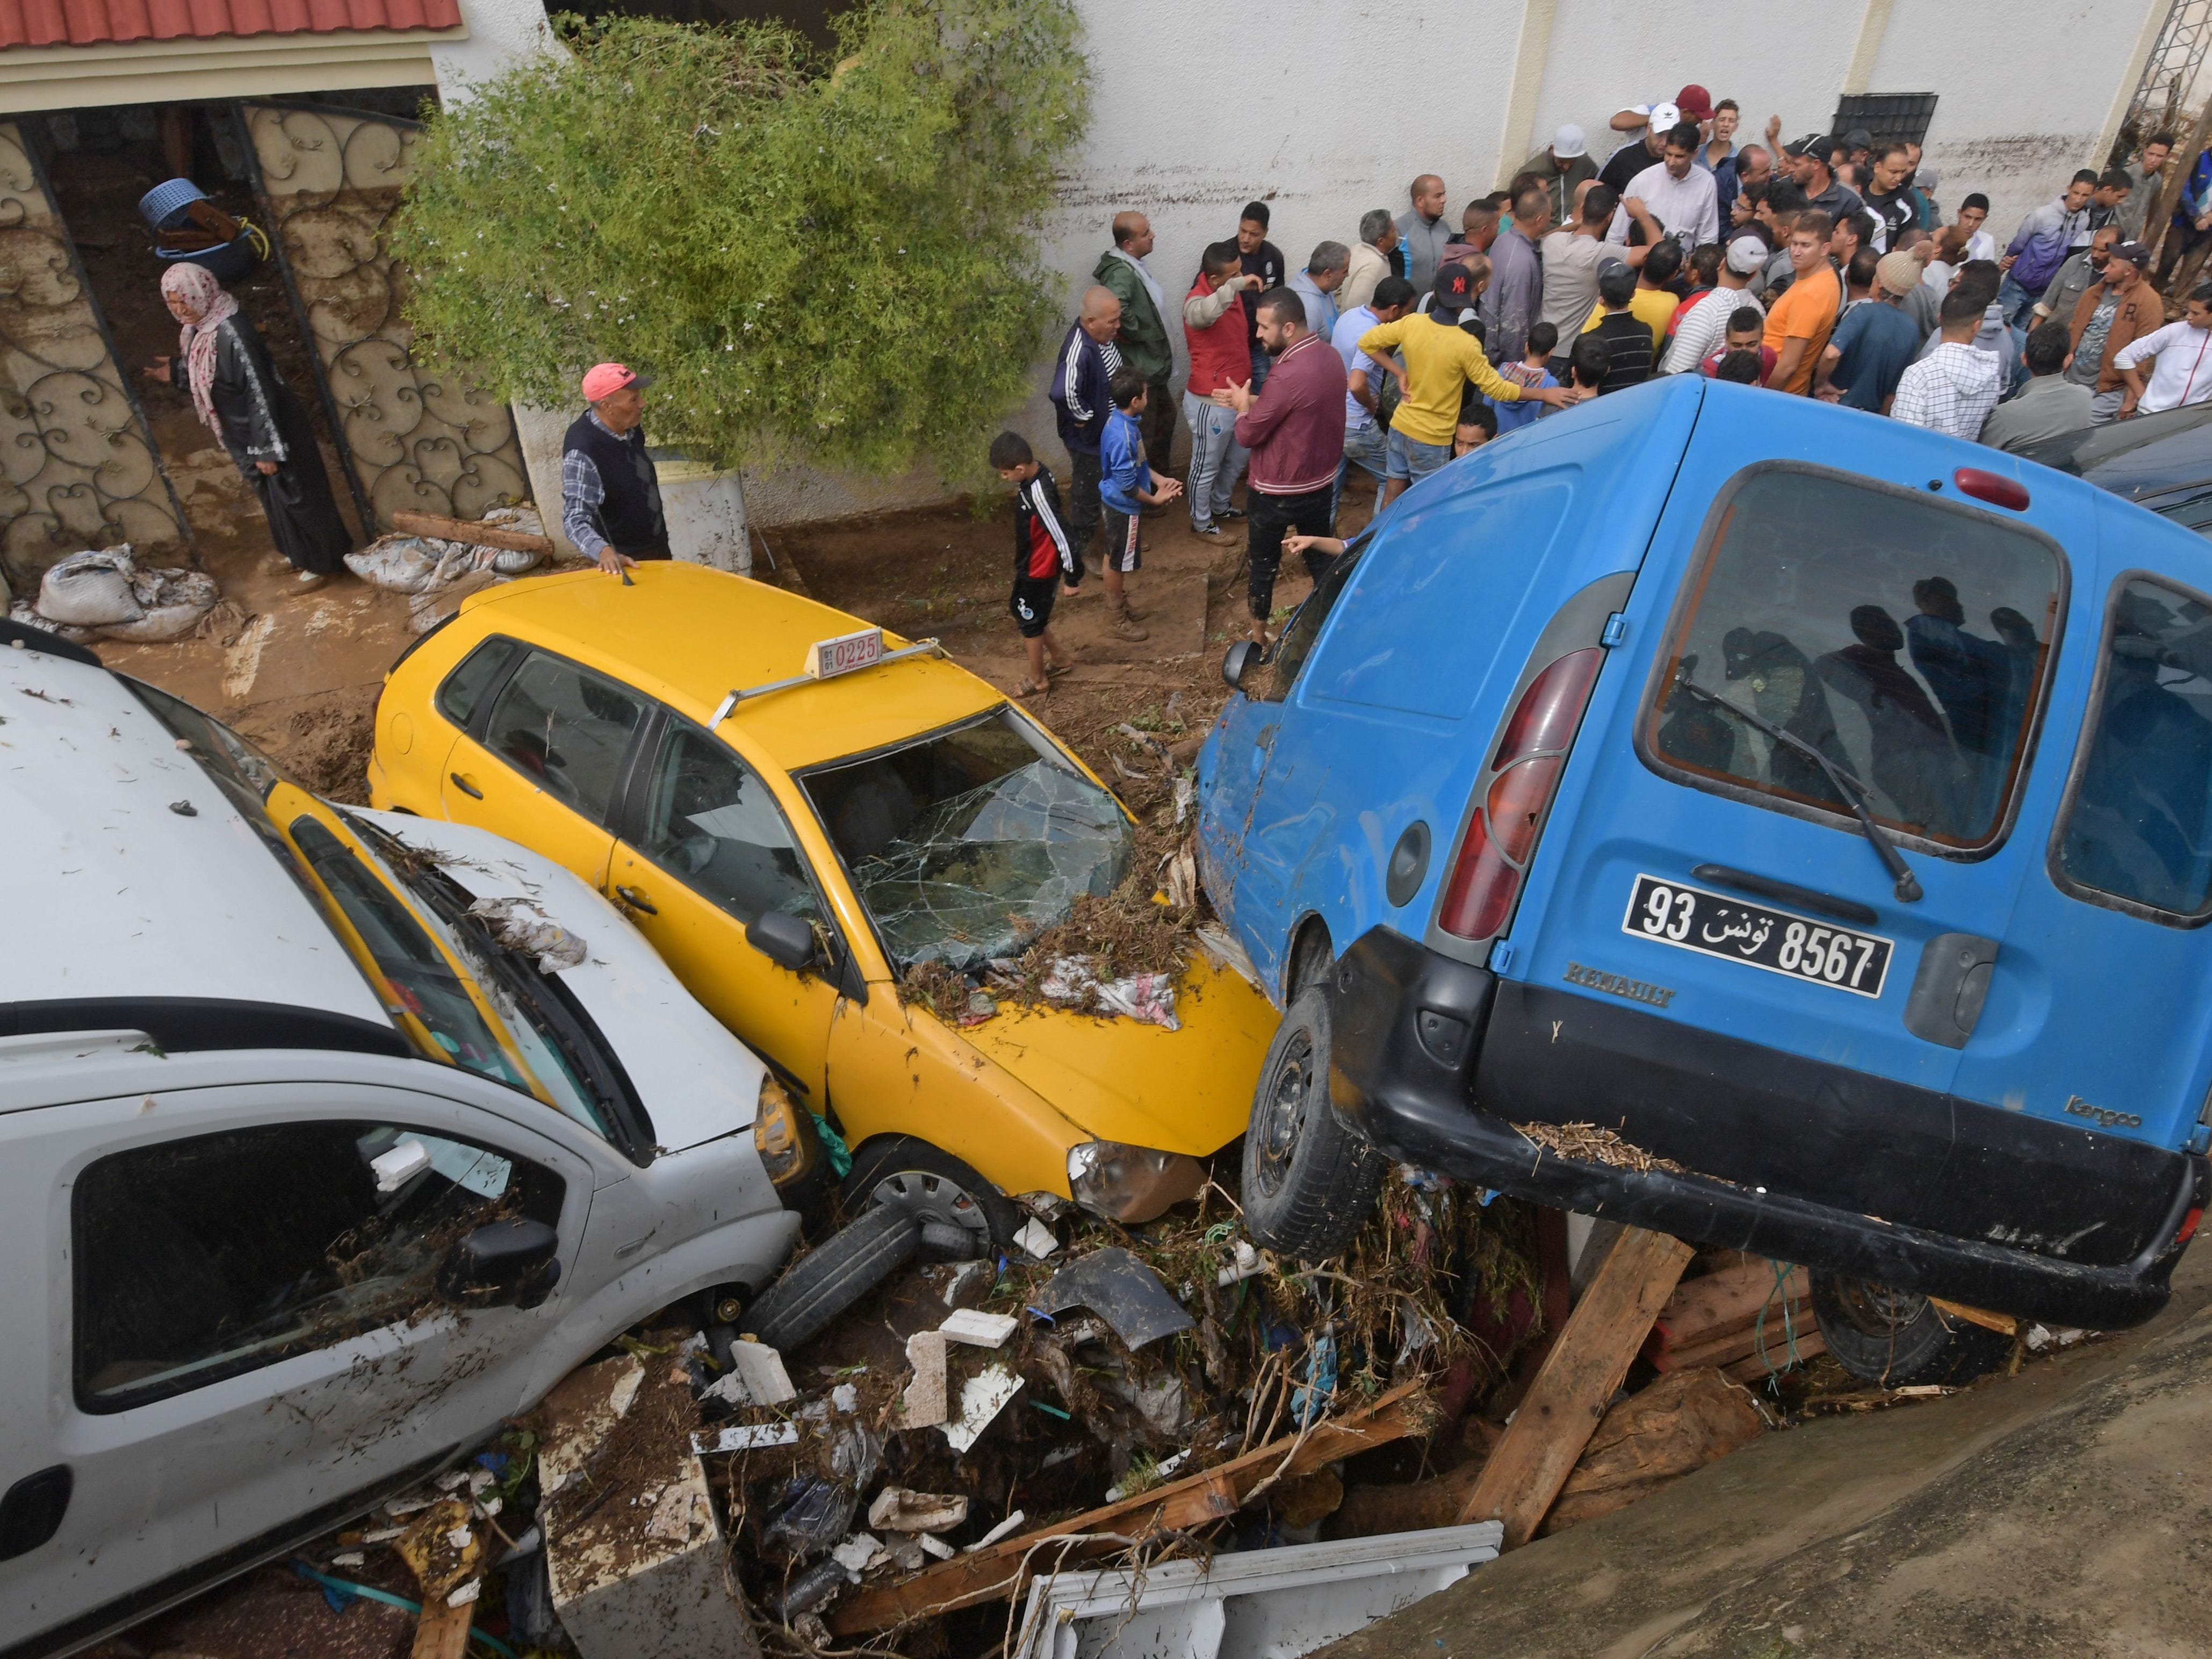 Cars pile up on a street after being swept away by torrential rains in the township of Mhamdia near the Tunisian capital of Tunis on Oct. 18, 2018.